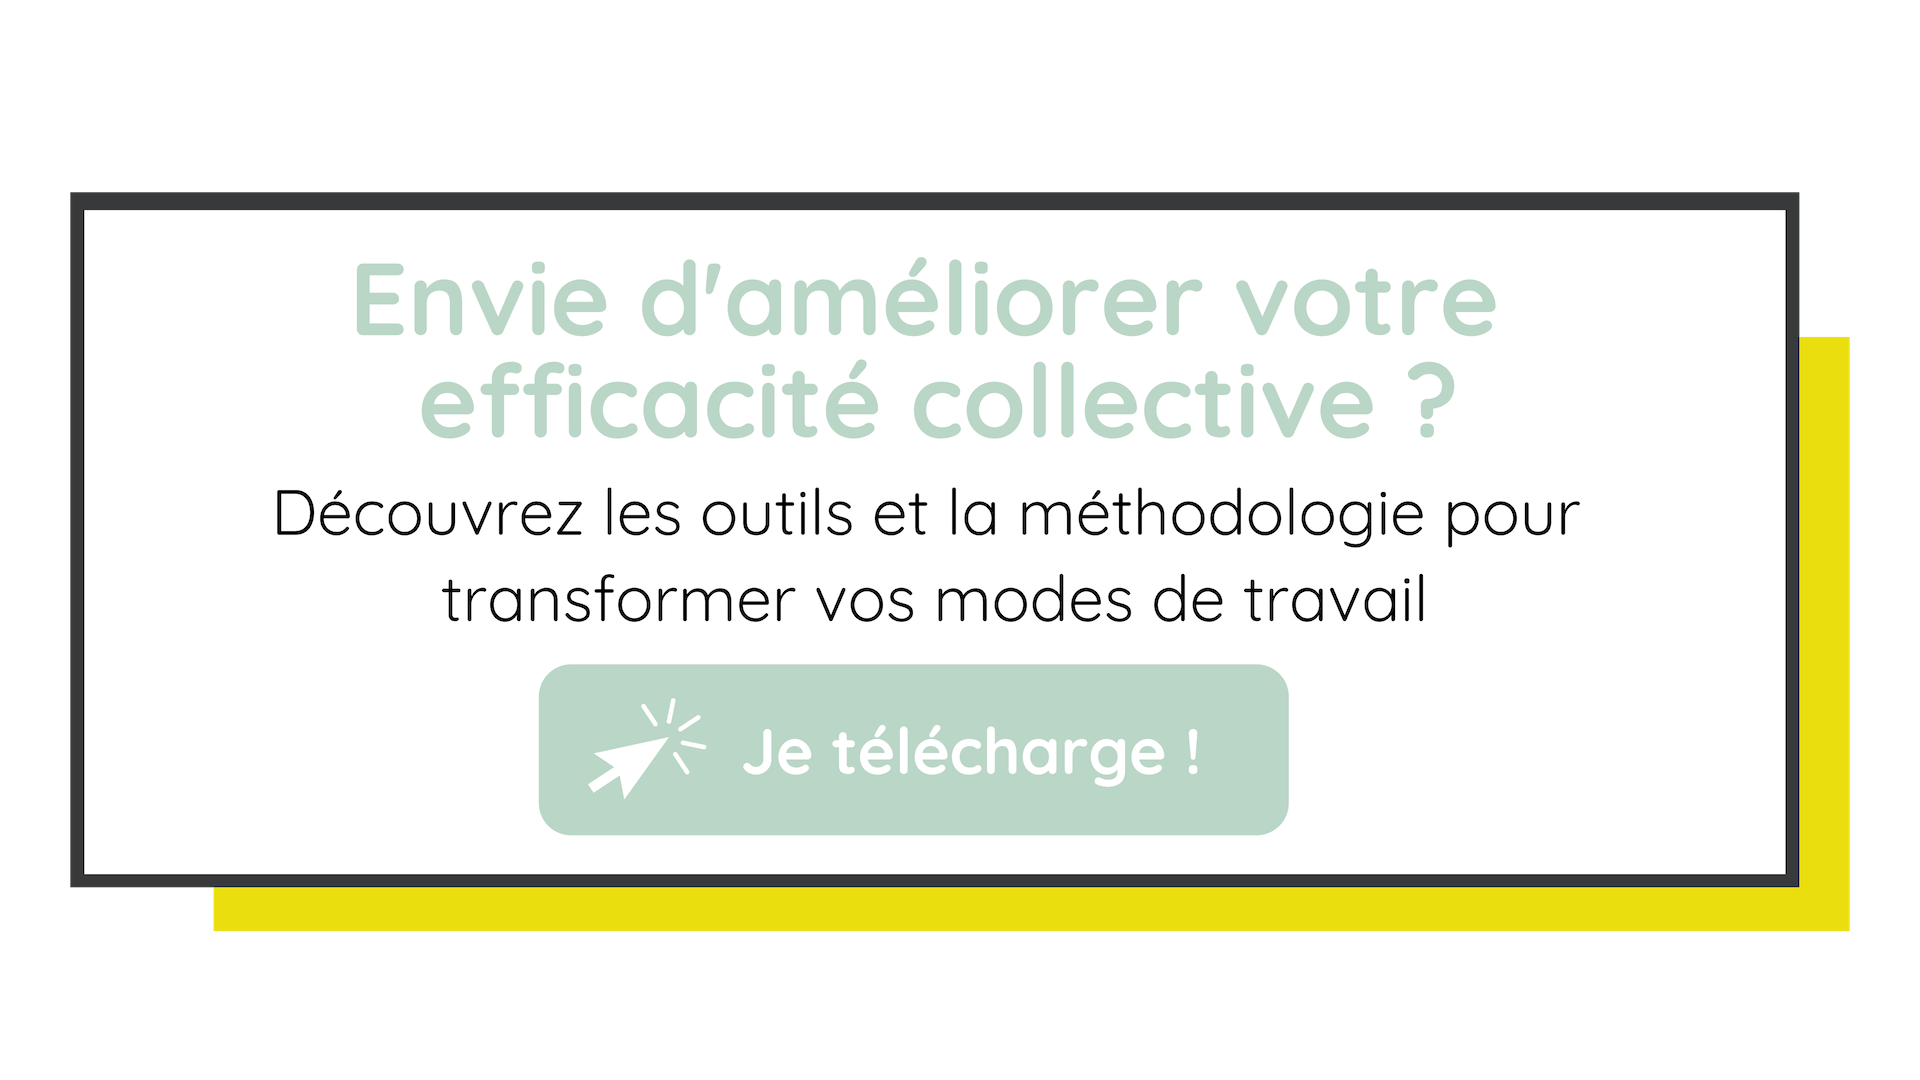 guide_ameliorer_efficacité_collective